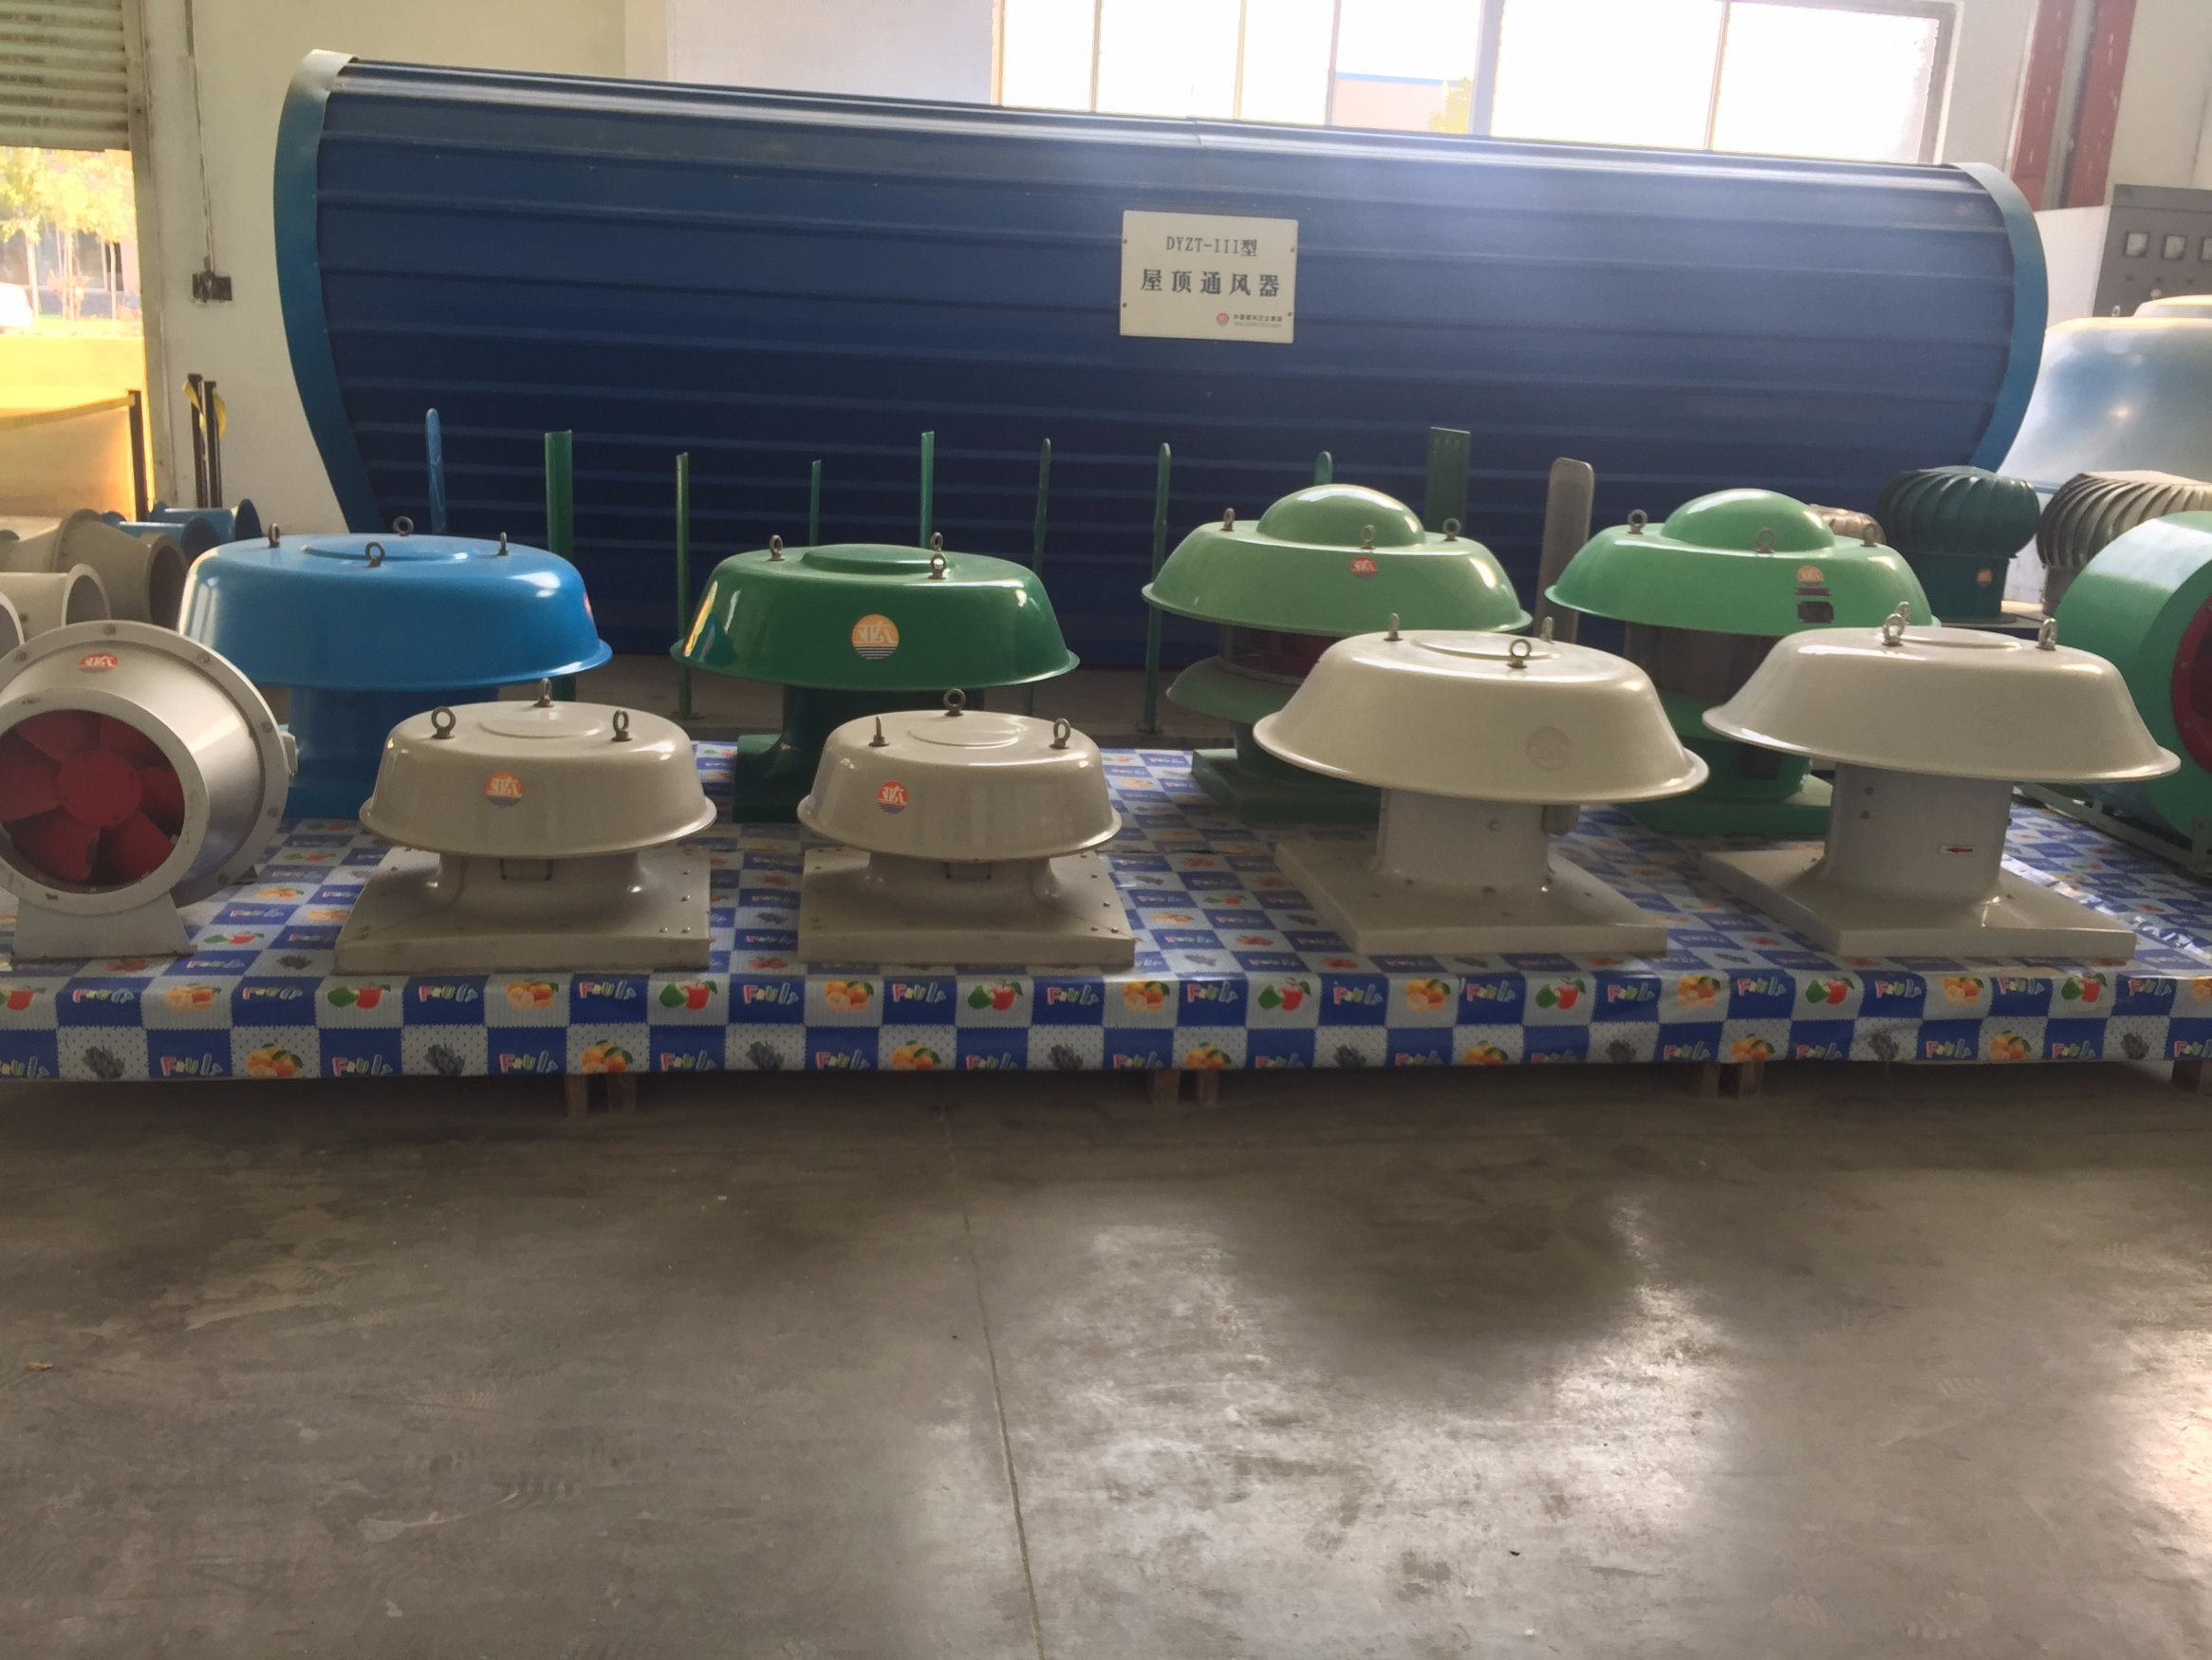 China Frp Industrial Roof Ventilation Fan Roof Exhaust Fan Photos Pictures Made In China Com